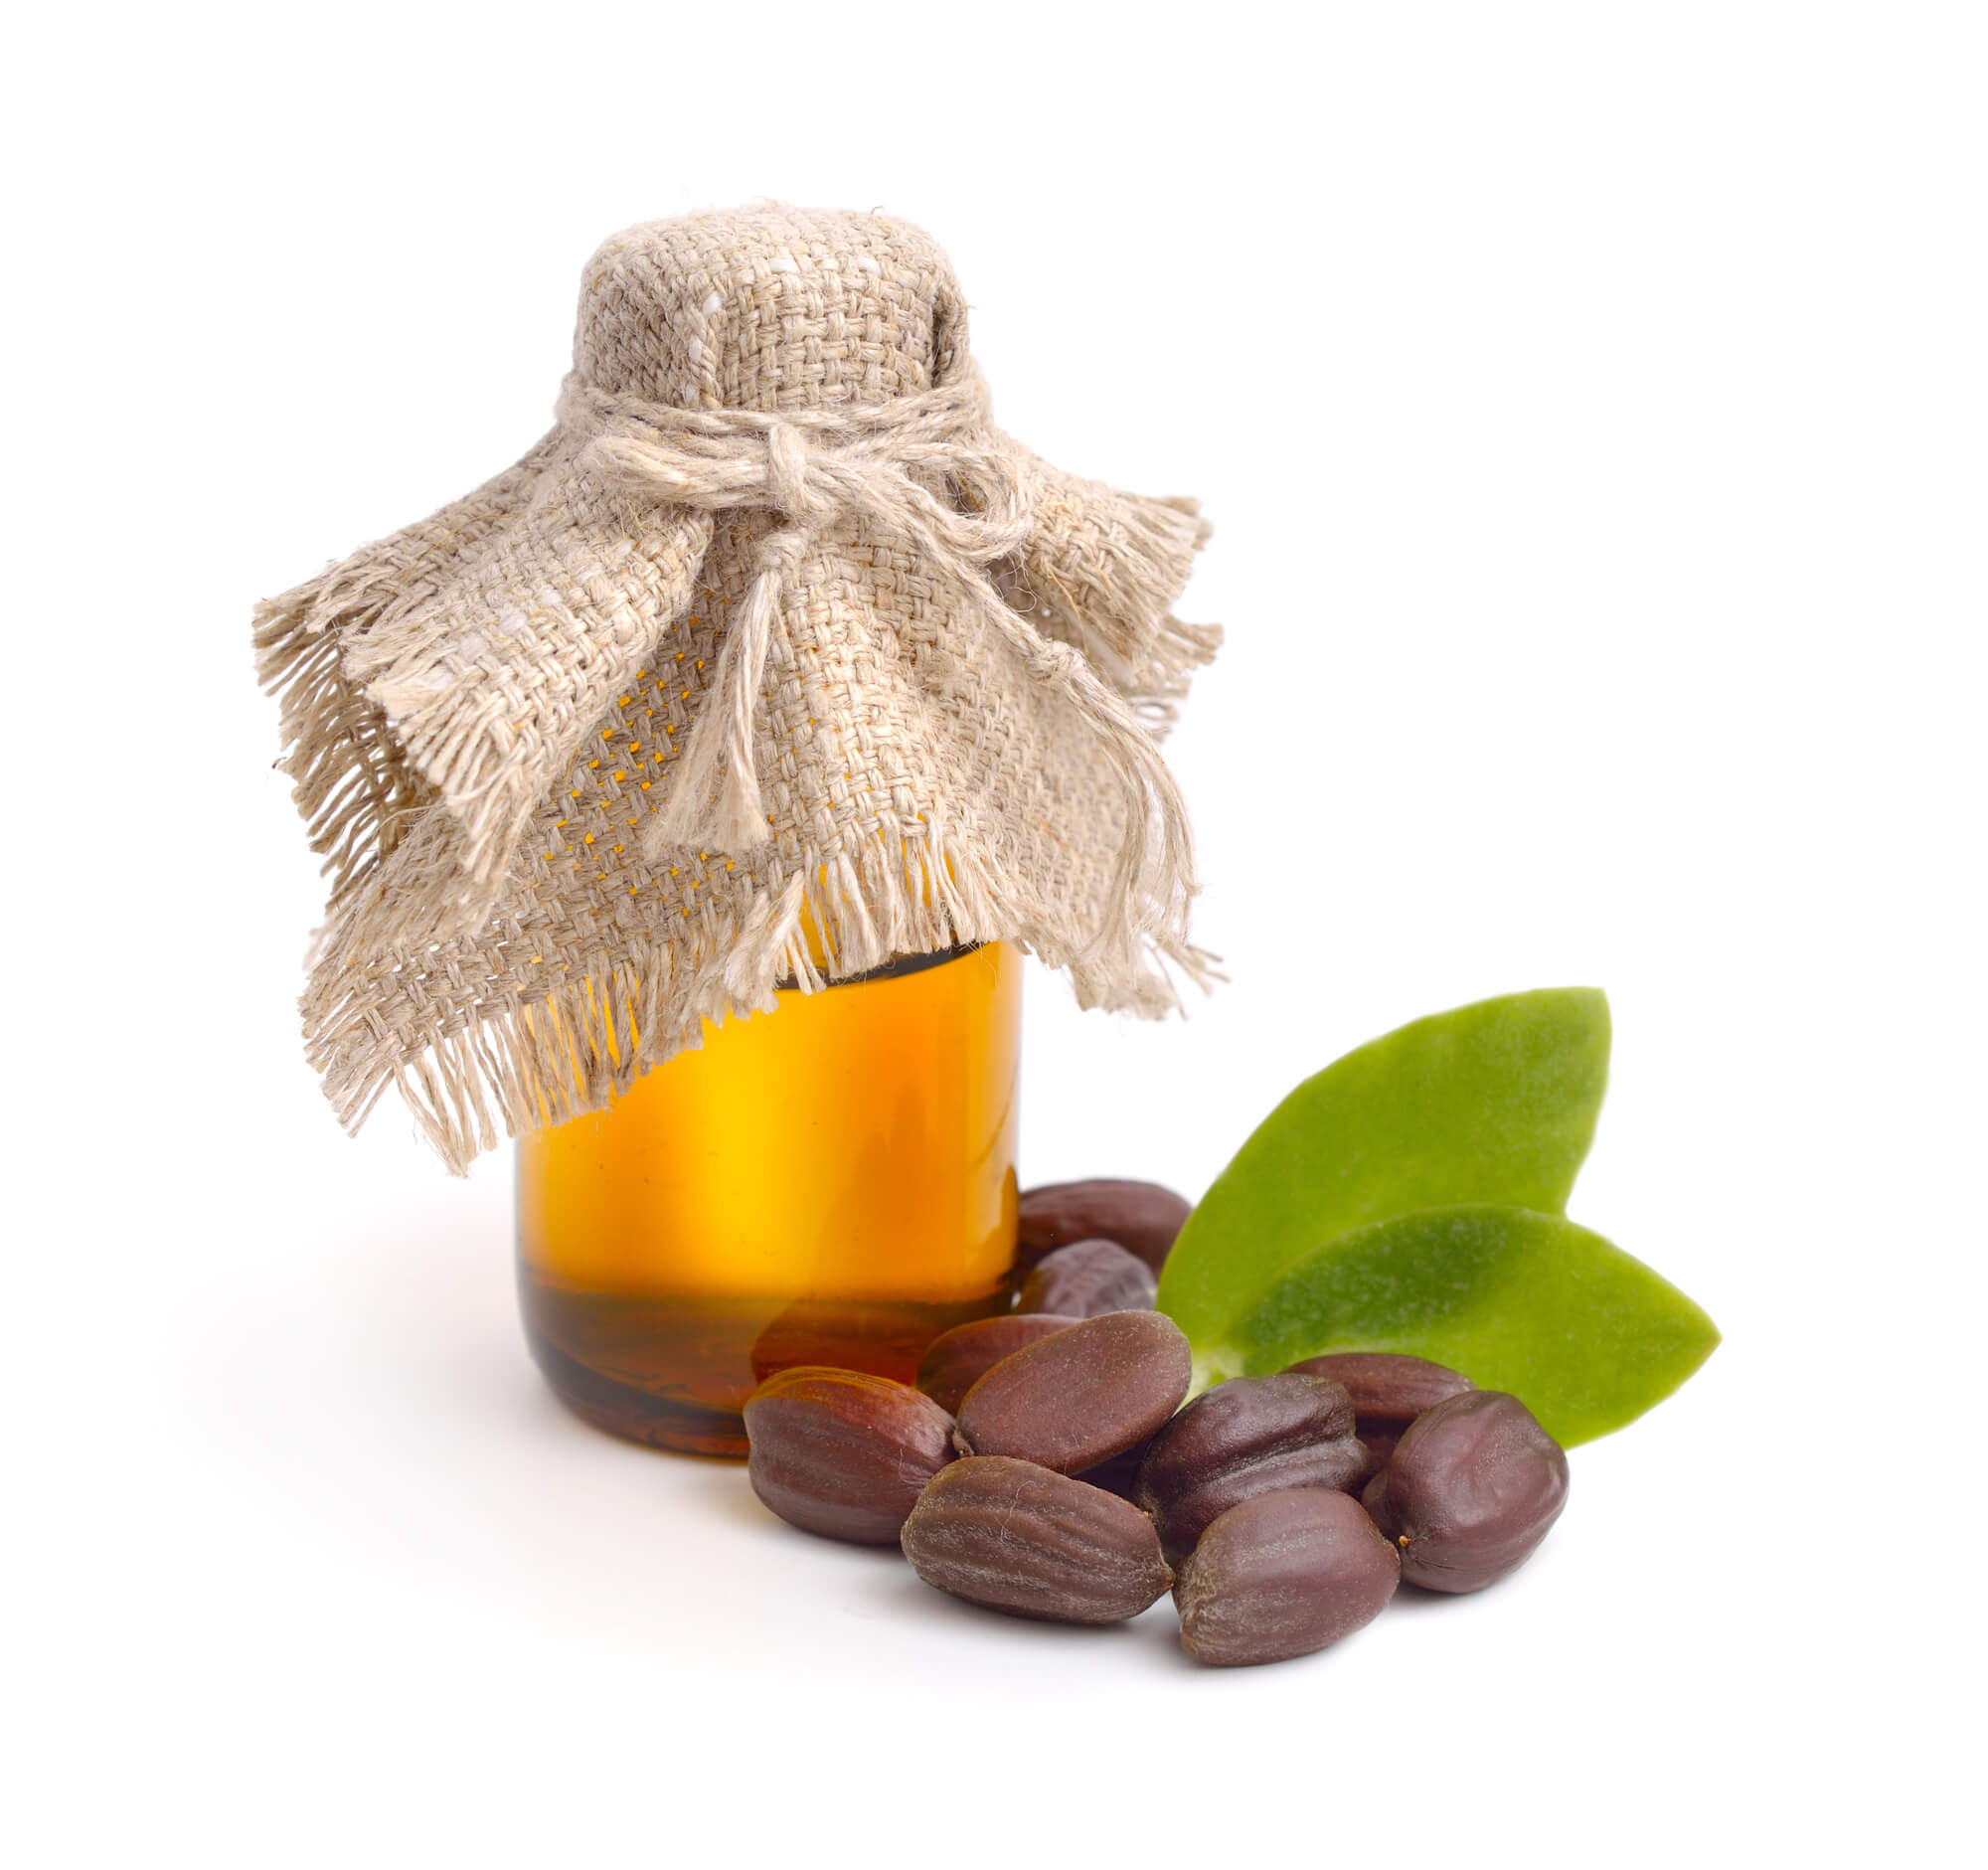 A bottle of jojoba oil next to jojoba seeds